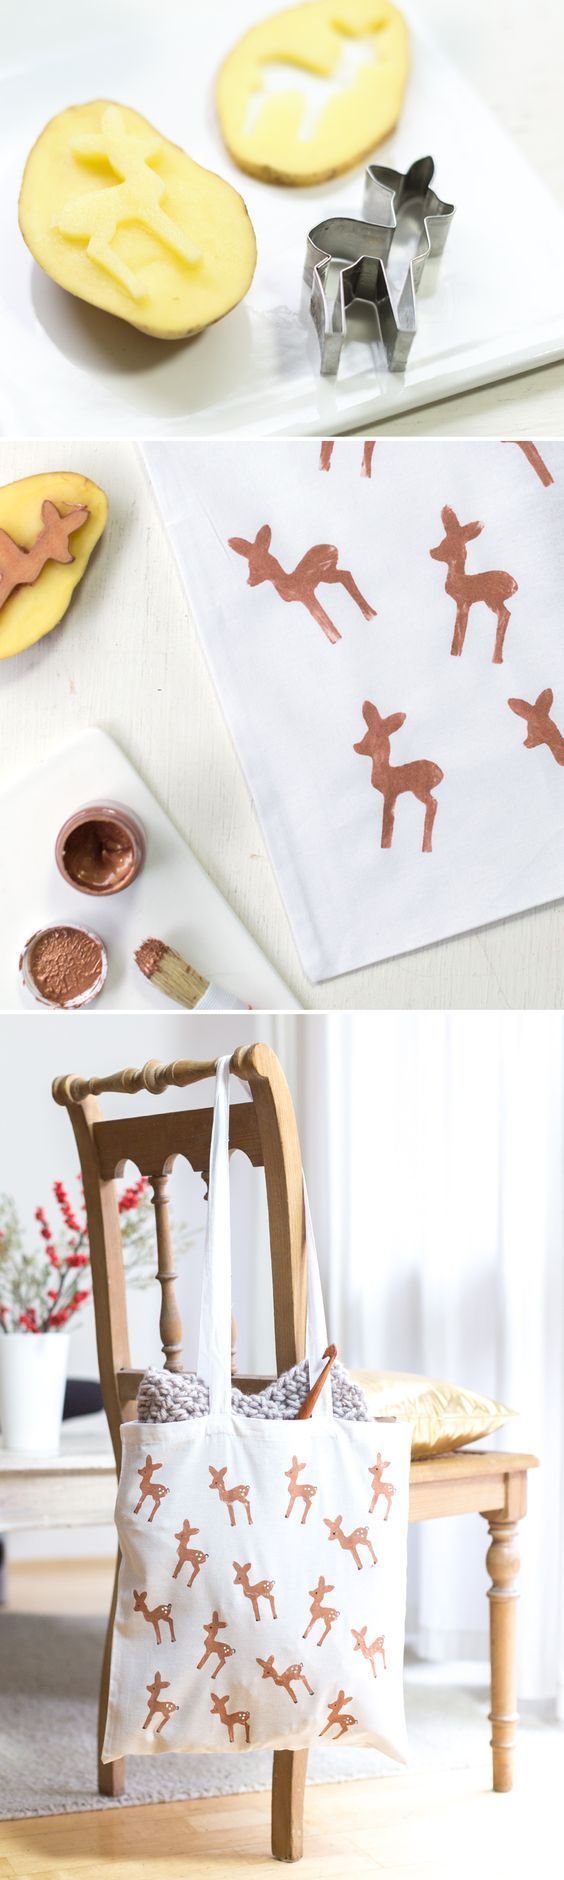 DIY Bambi bag with potato print, fast gifts homemade – Still Designs for Women